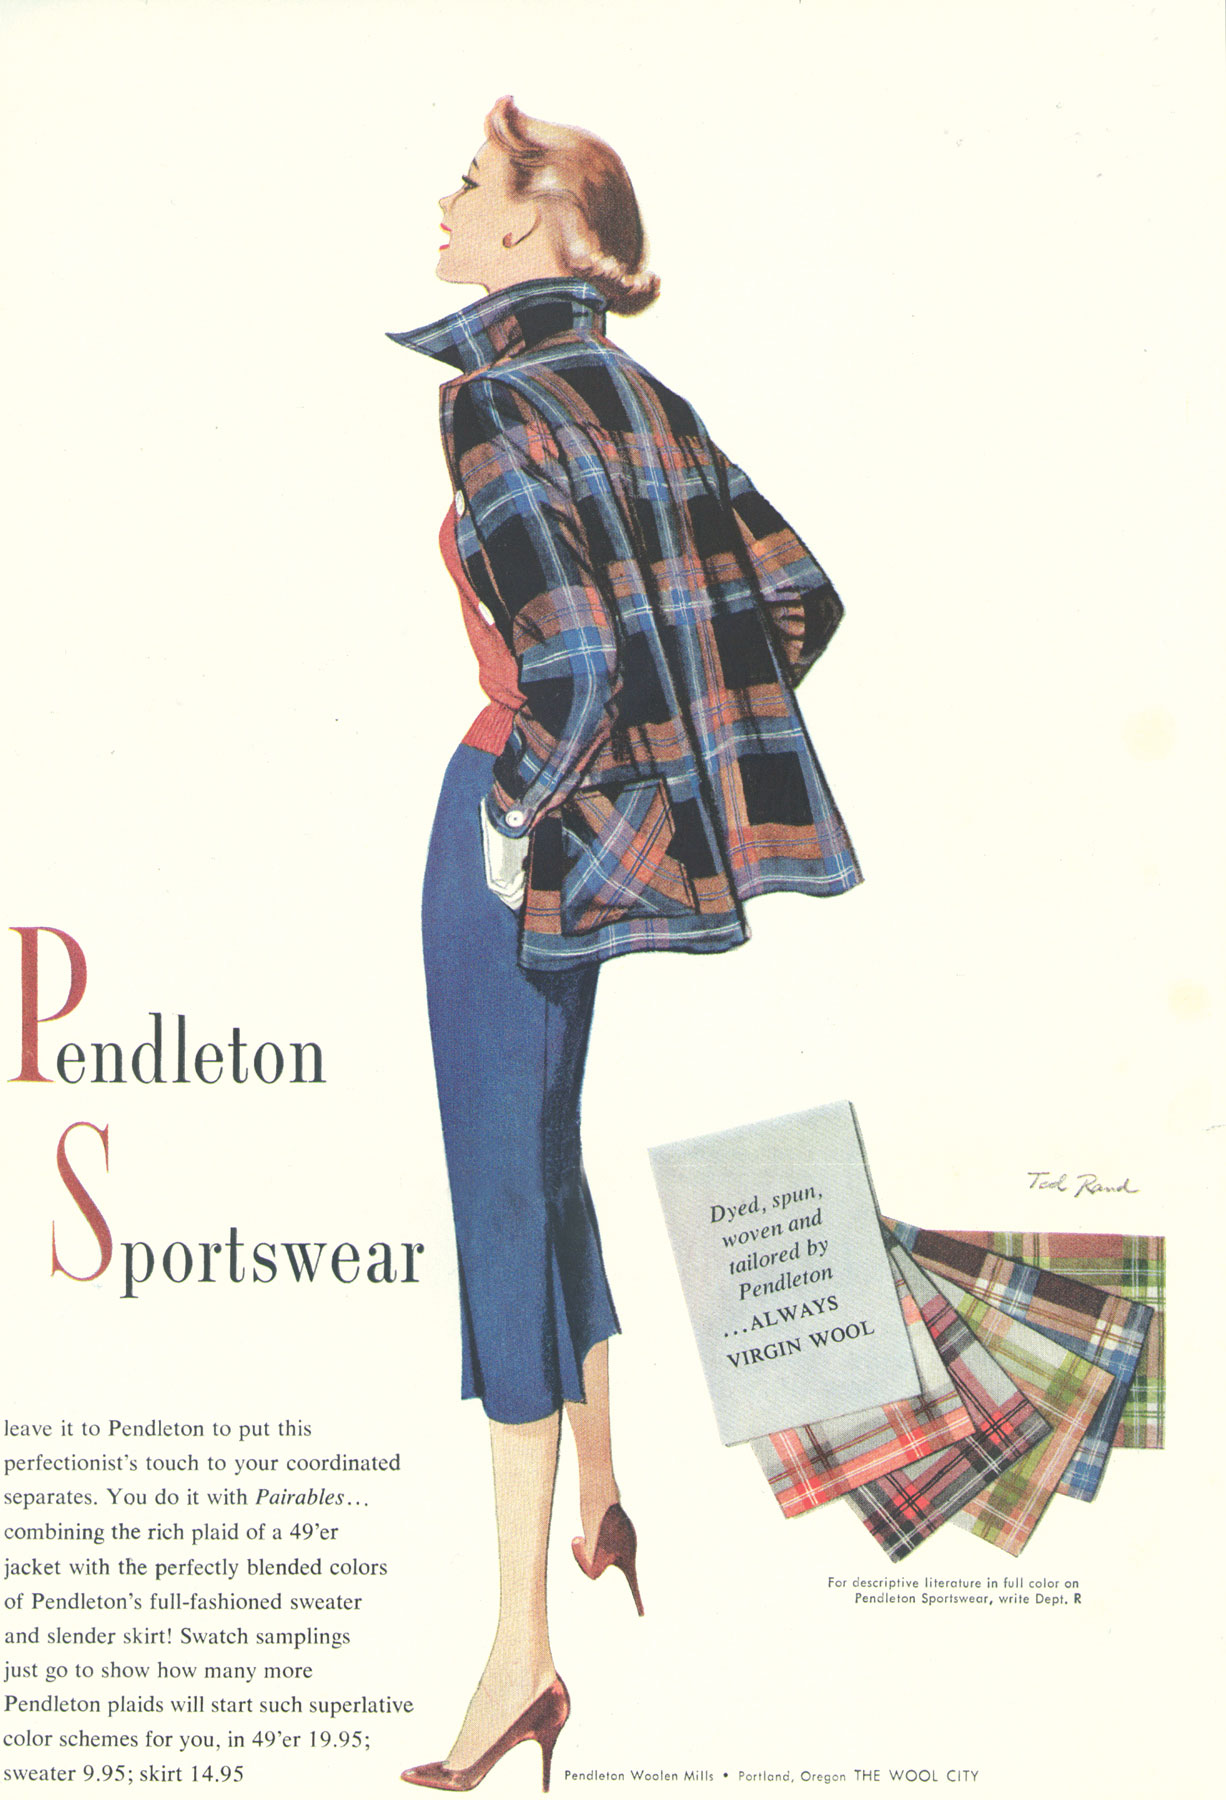 A classic vintage ad for Pendleton sportswear from 1952, featuring a Pendleton 49'er jacket, art by Ted Rand.